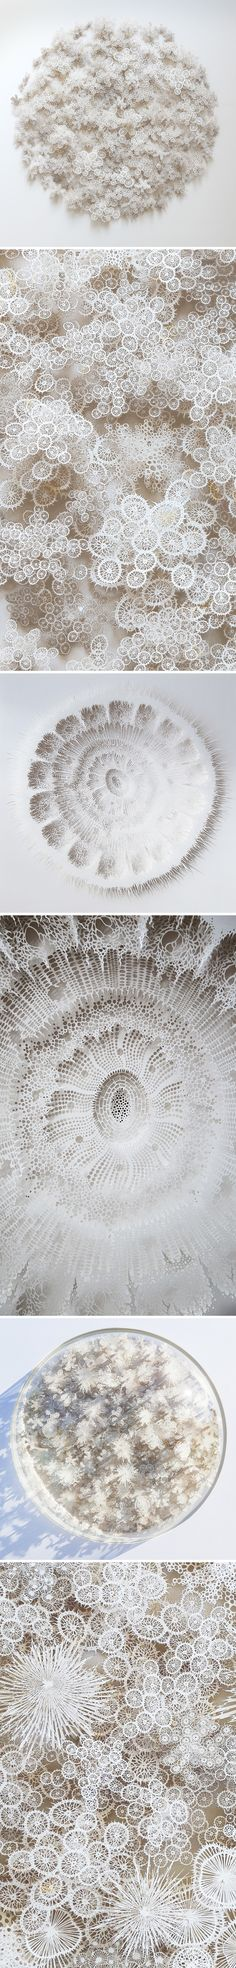 Incredible organic paper cuttings by Rogan Brown. http://roganbrown.com/section/327584.html